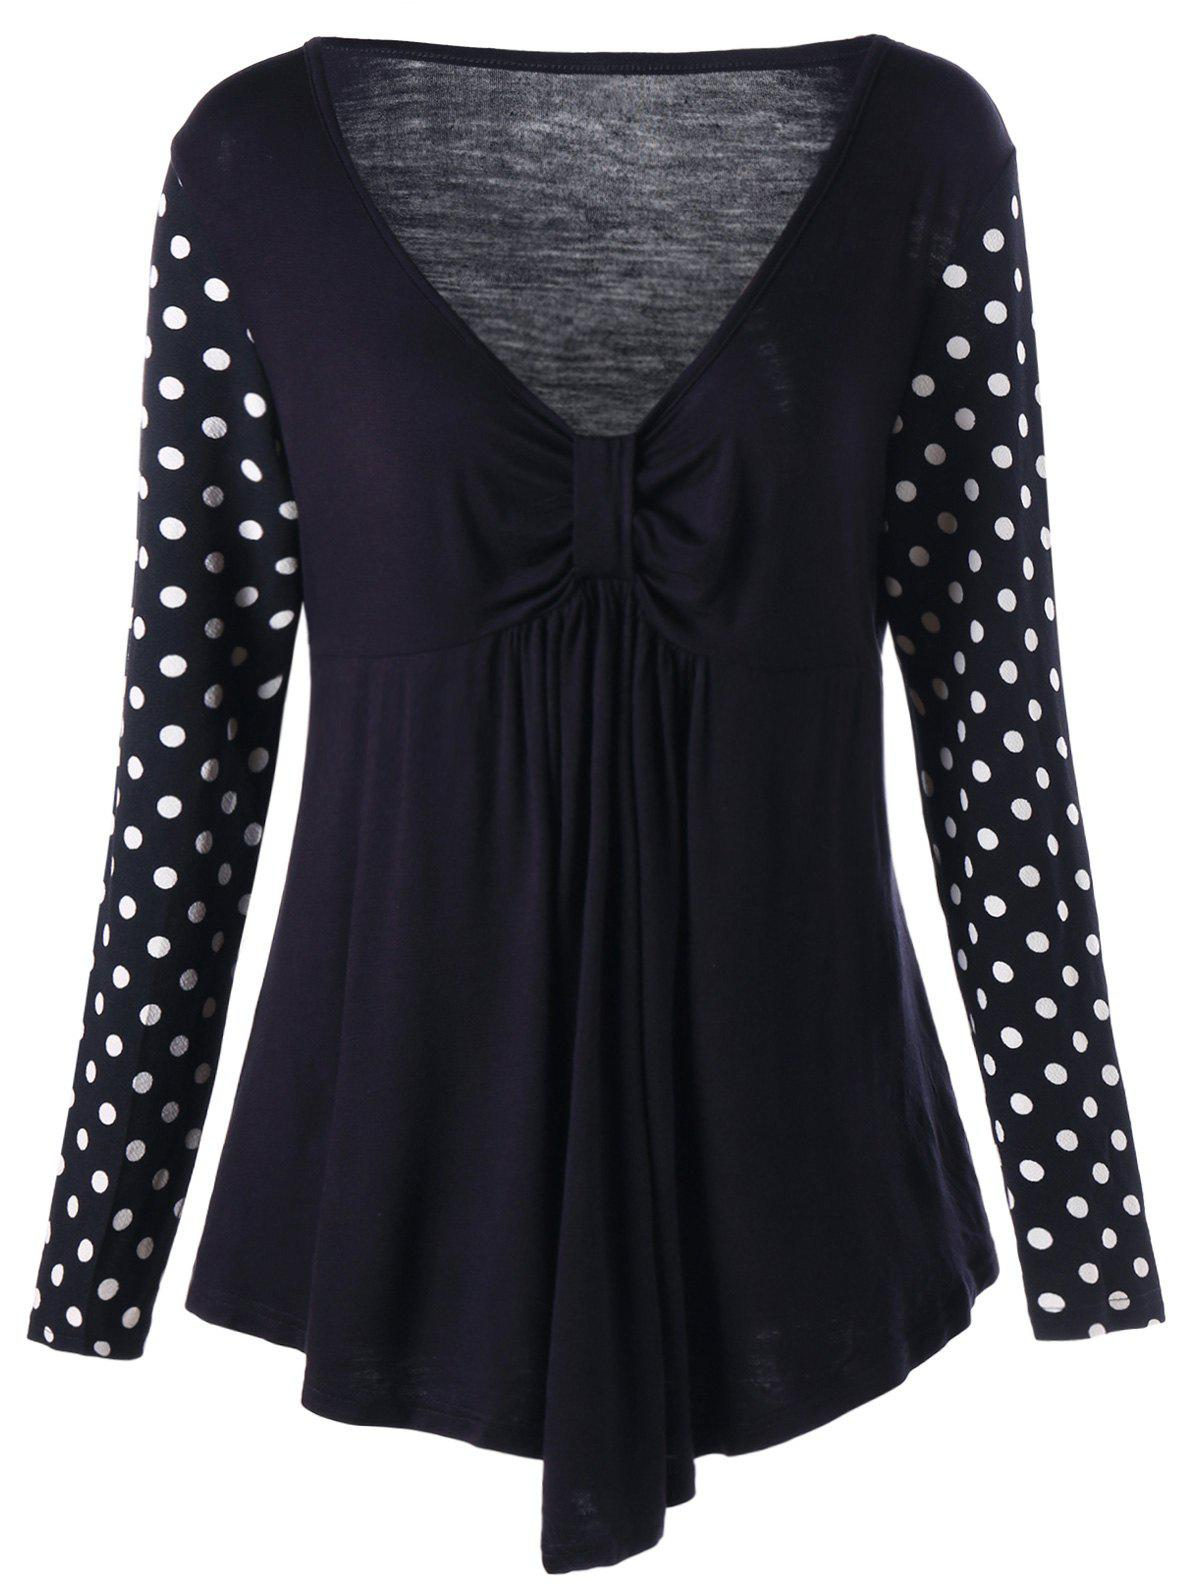 Plus Size Polka Dot Empire Waist Tunic T-shirt plus size polka dot baggy t shirt